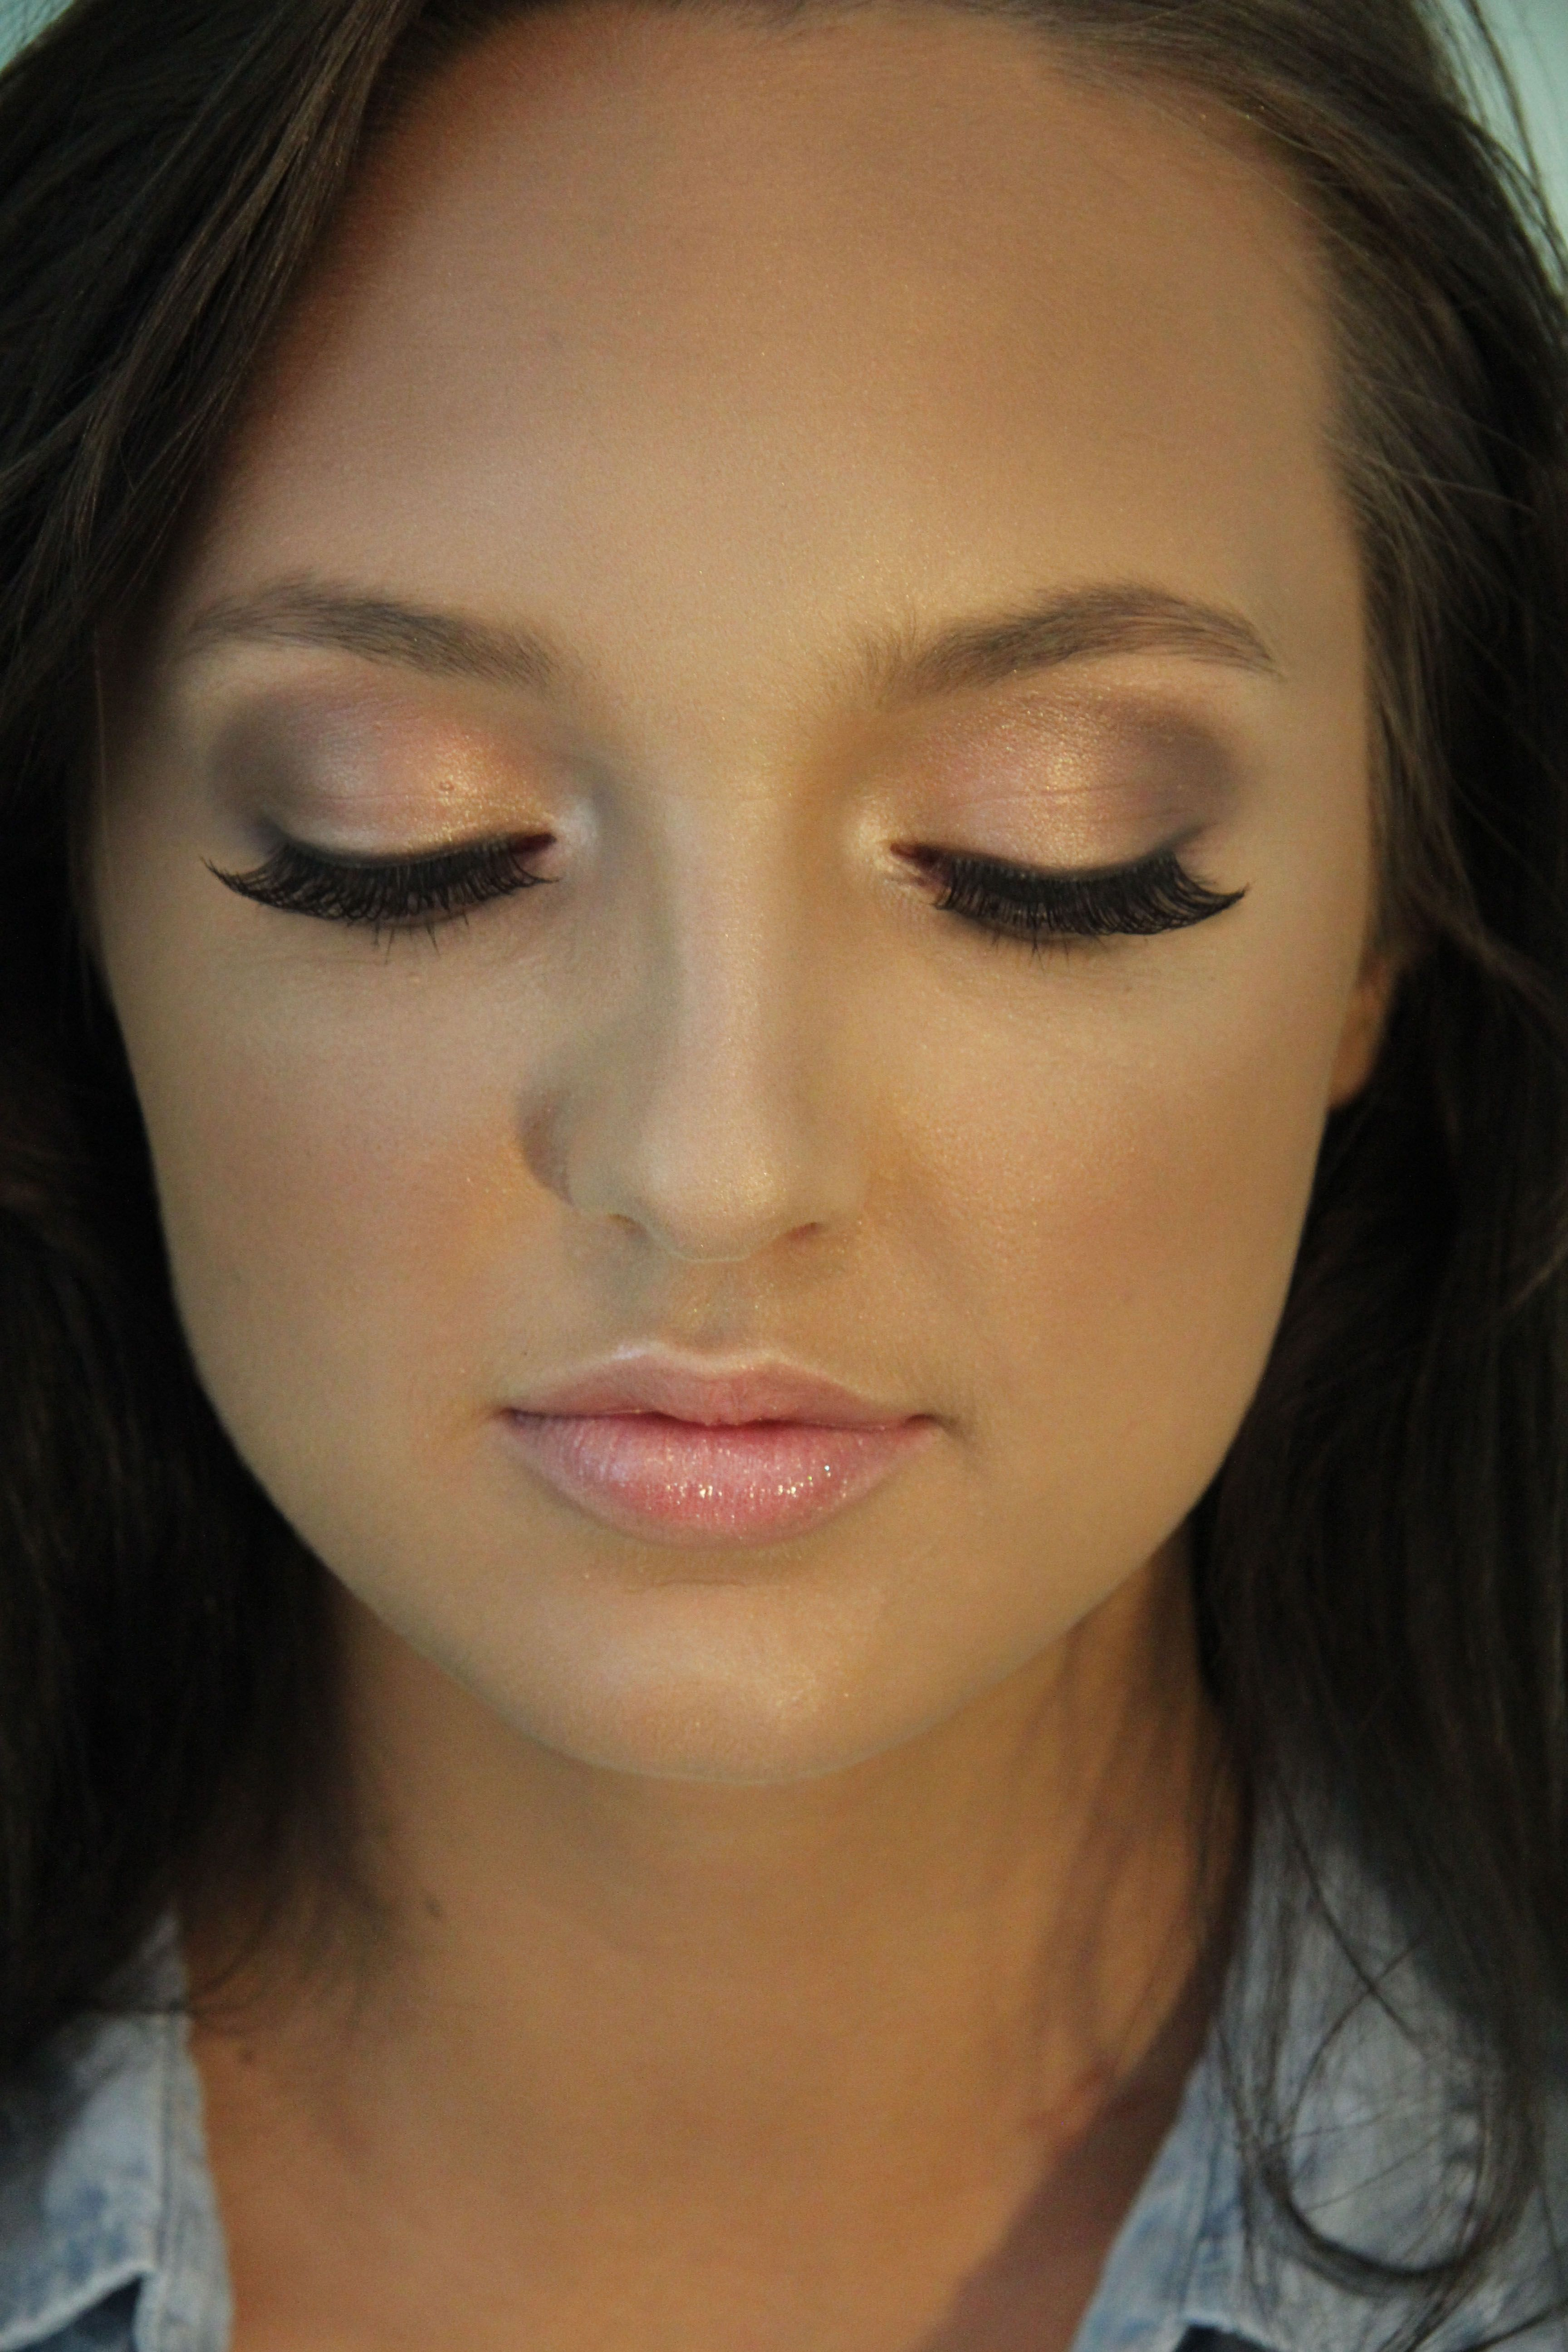 Makeup ideas for my sister's big day!!! @sarraashley